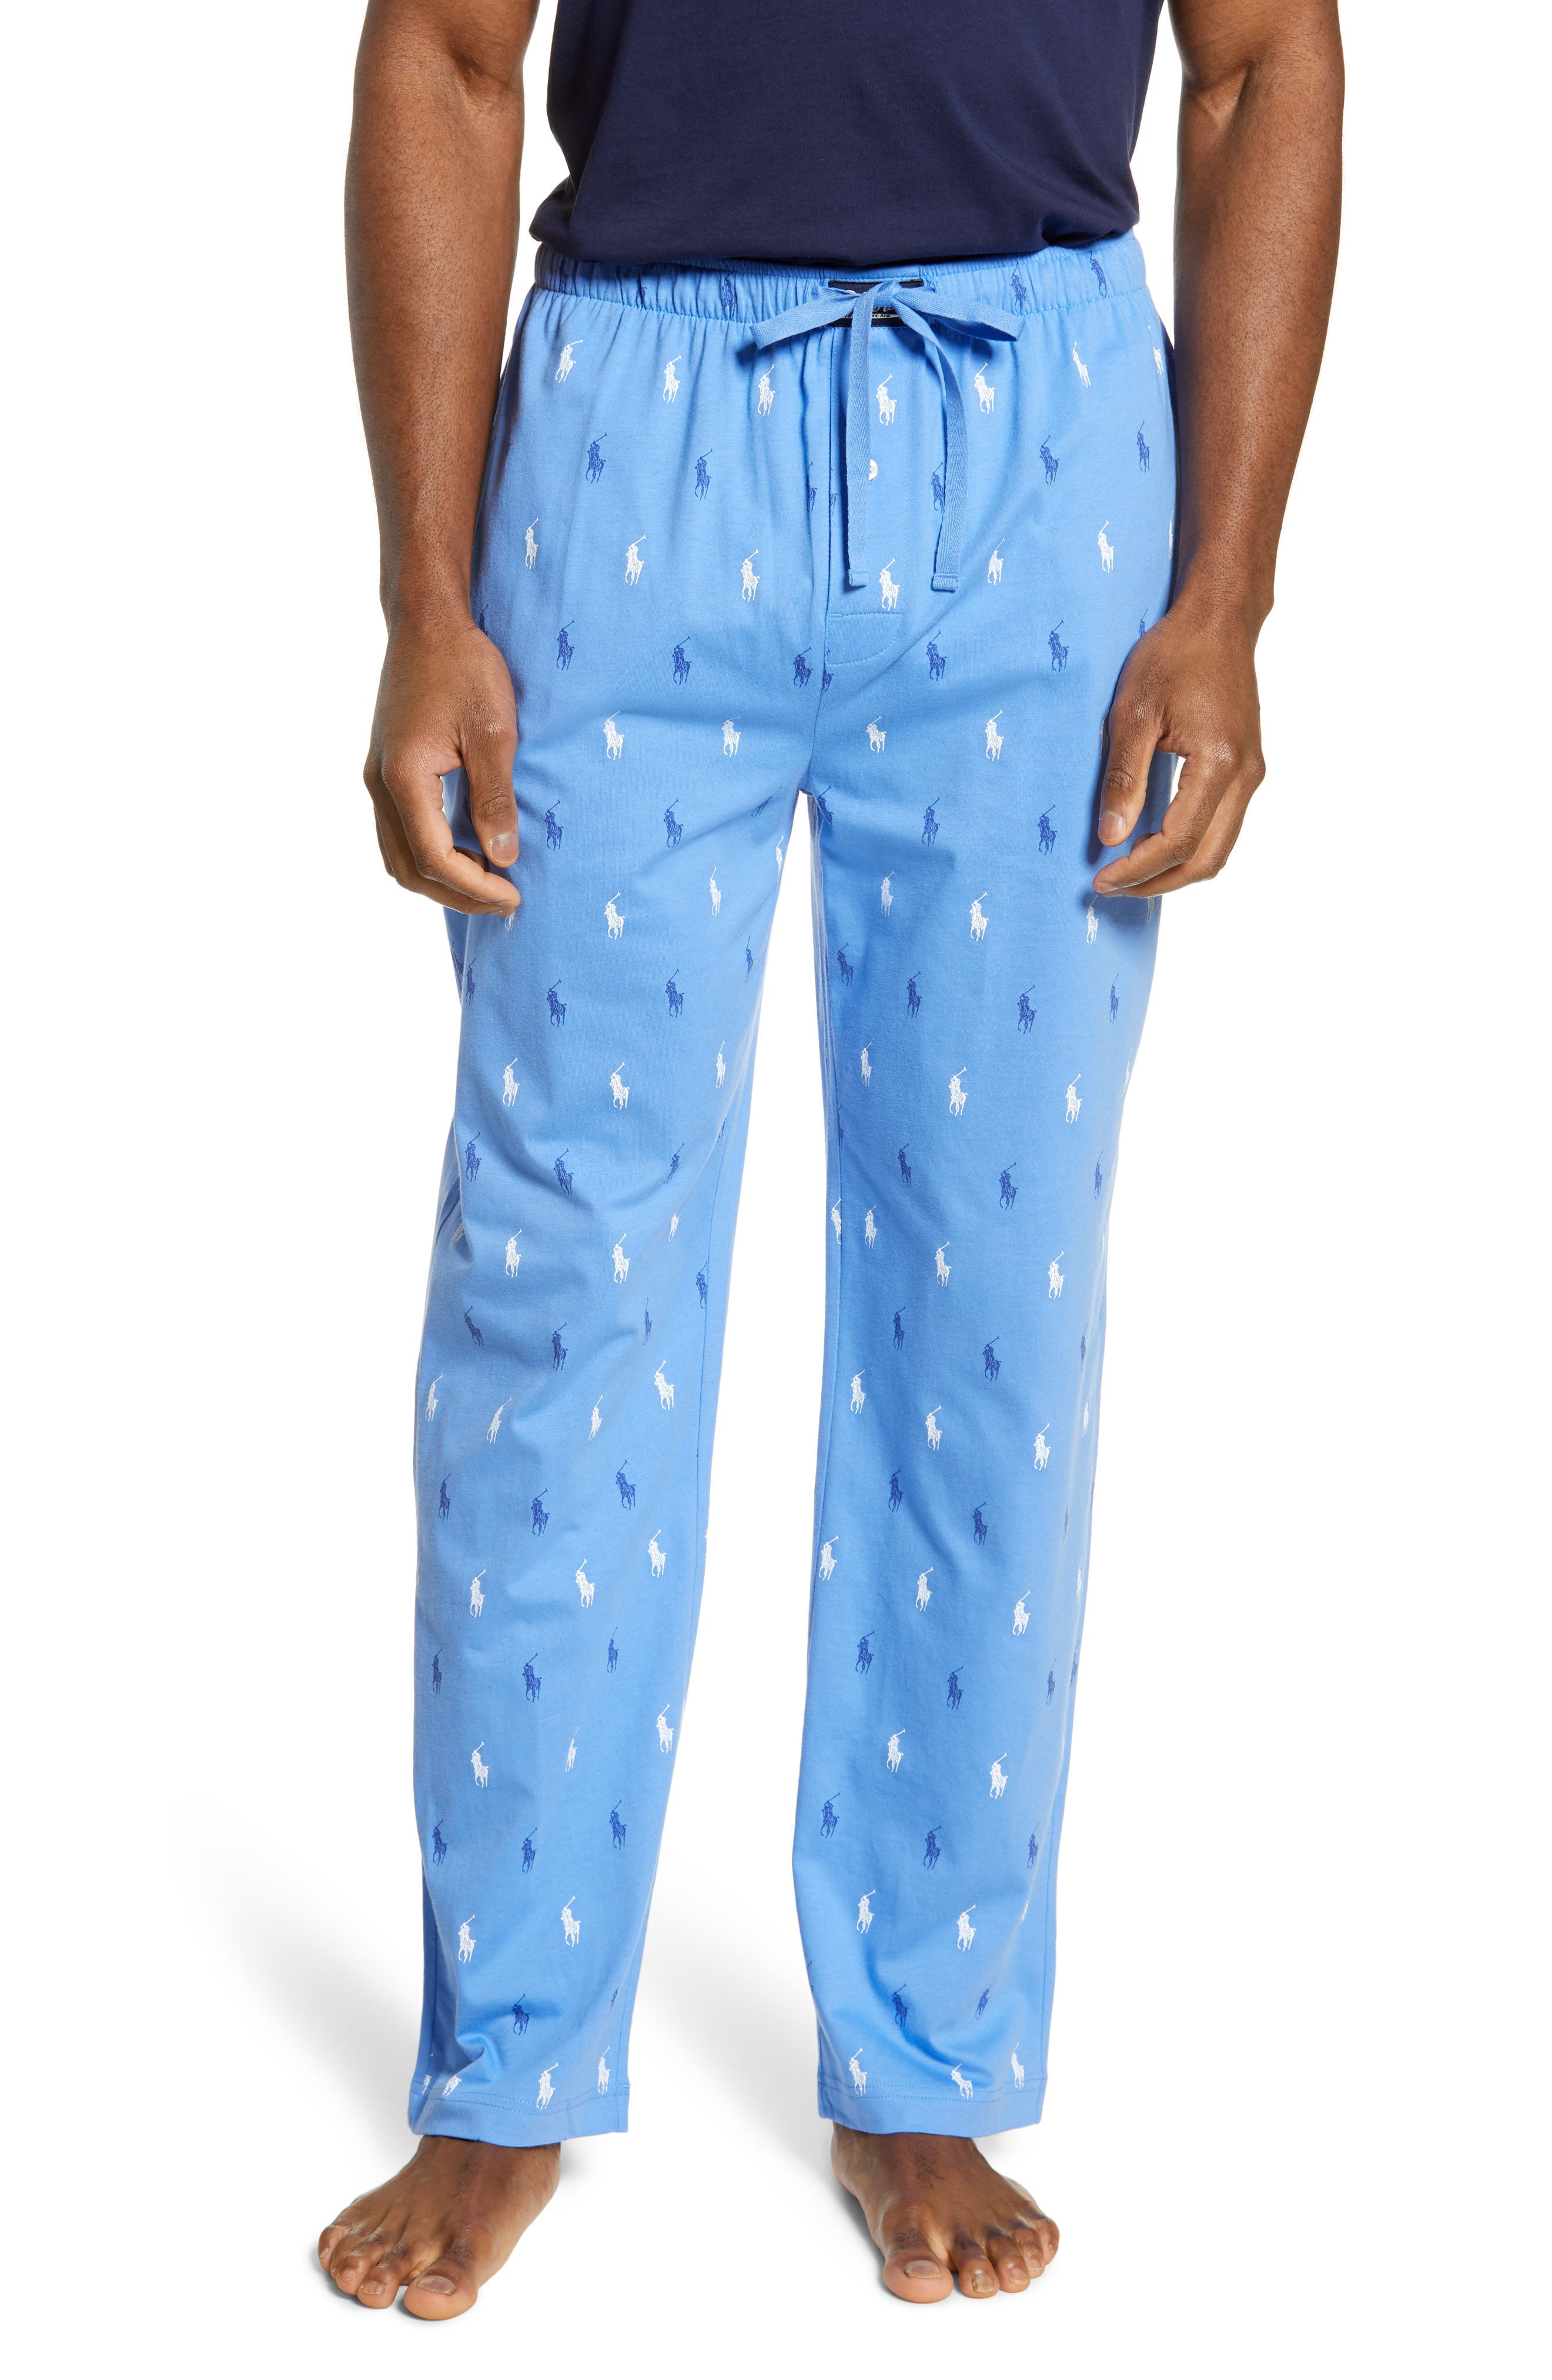 PajamasLoungeamp; Polo Lauren PajamasNordstrom Ralph Men's AL34qj5R